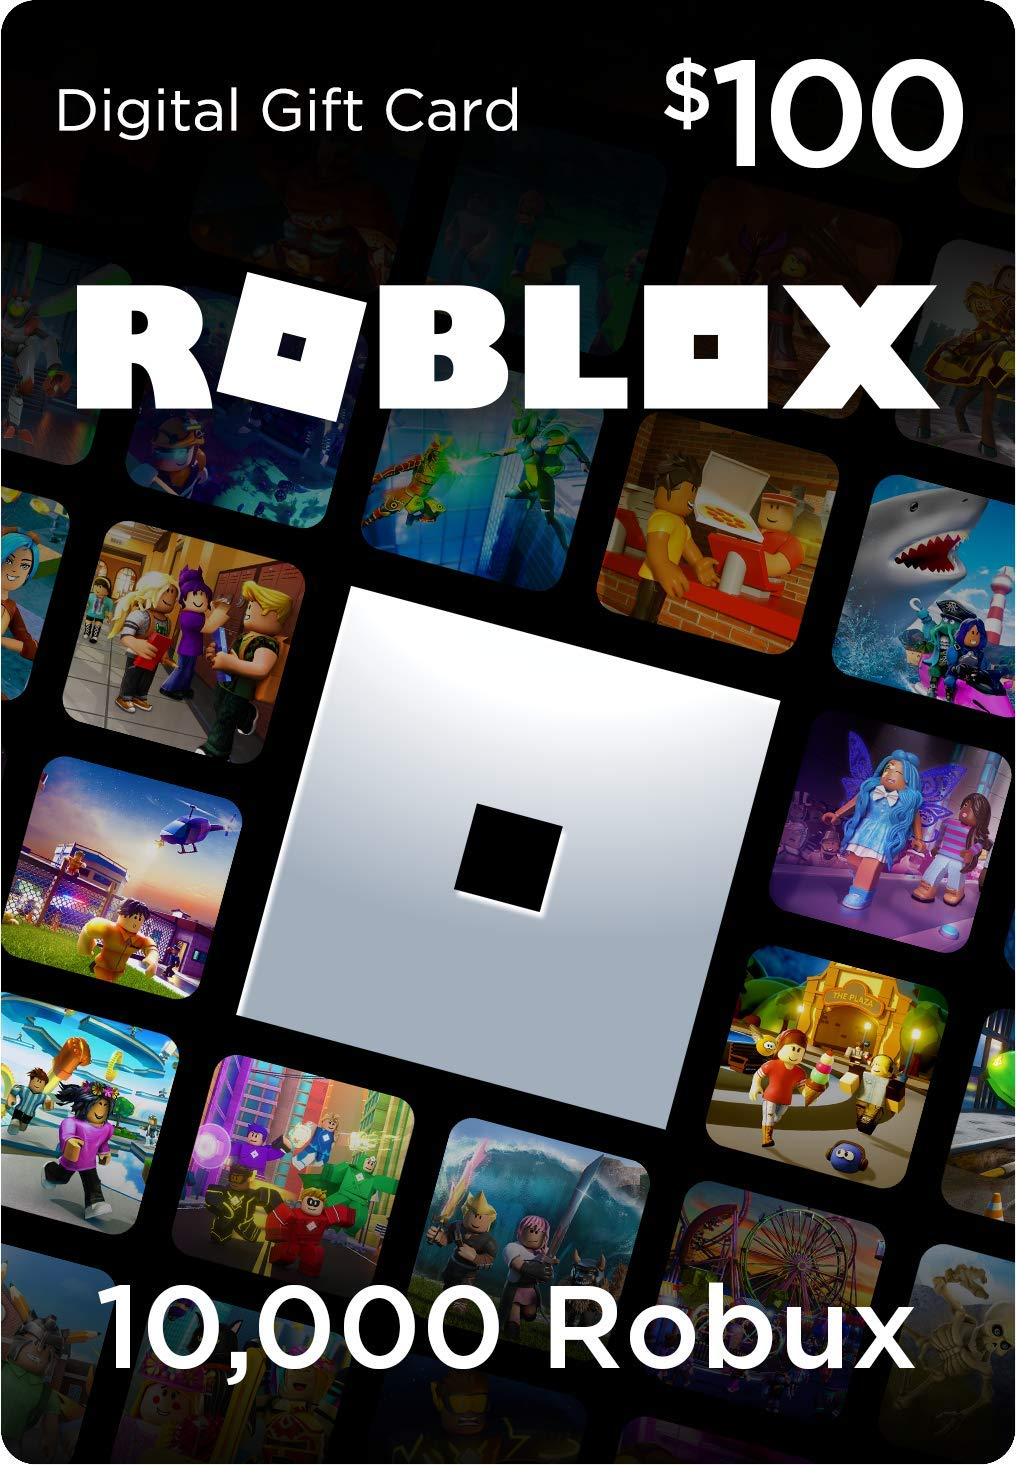 10000 Robux [Includes Exclusive Virtual Item]